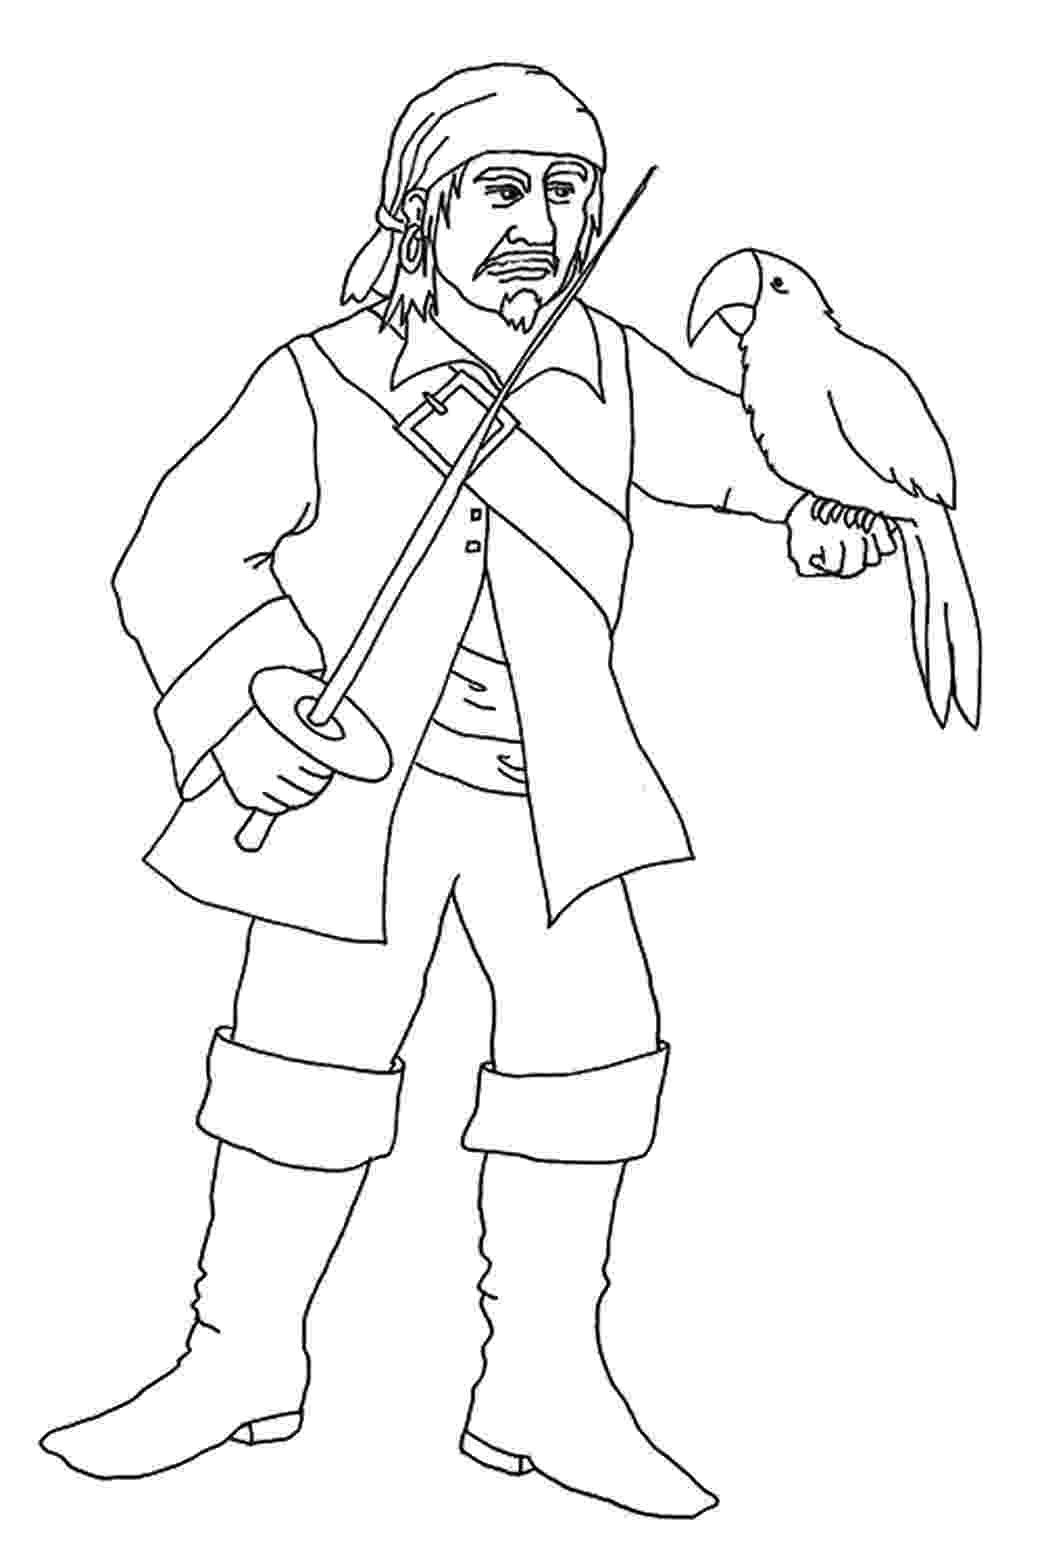 pirate parrot coloring pages parrot pirate coloring pages surfnetkids pages parrot pirate coloring